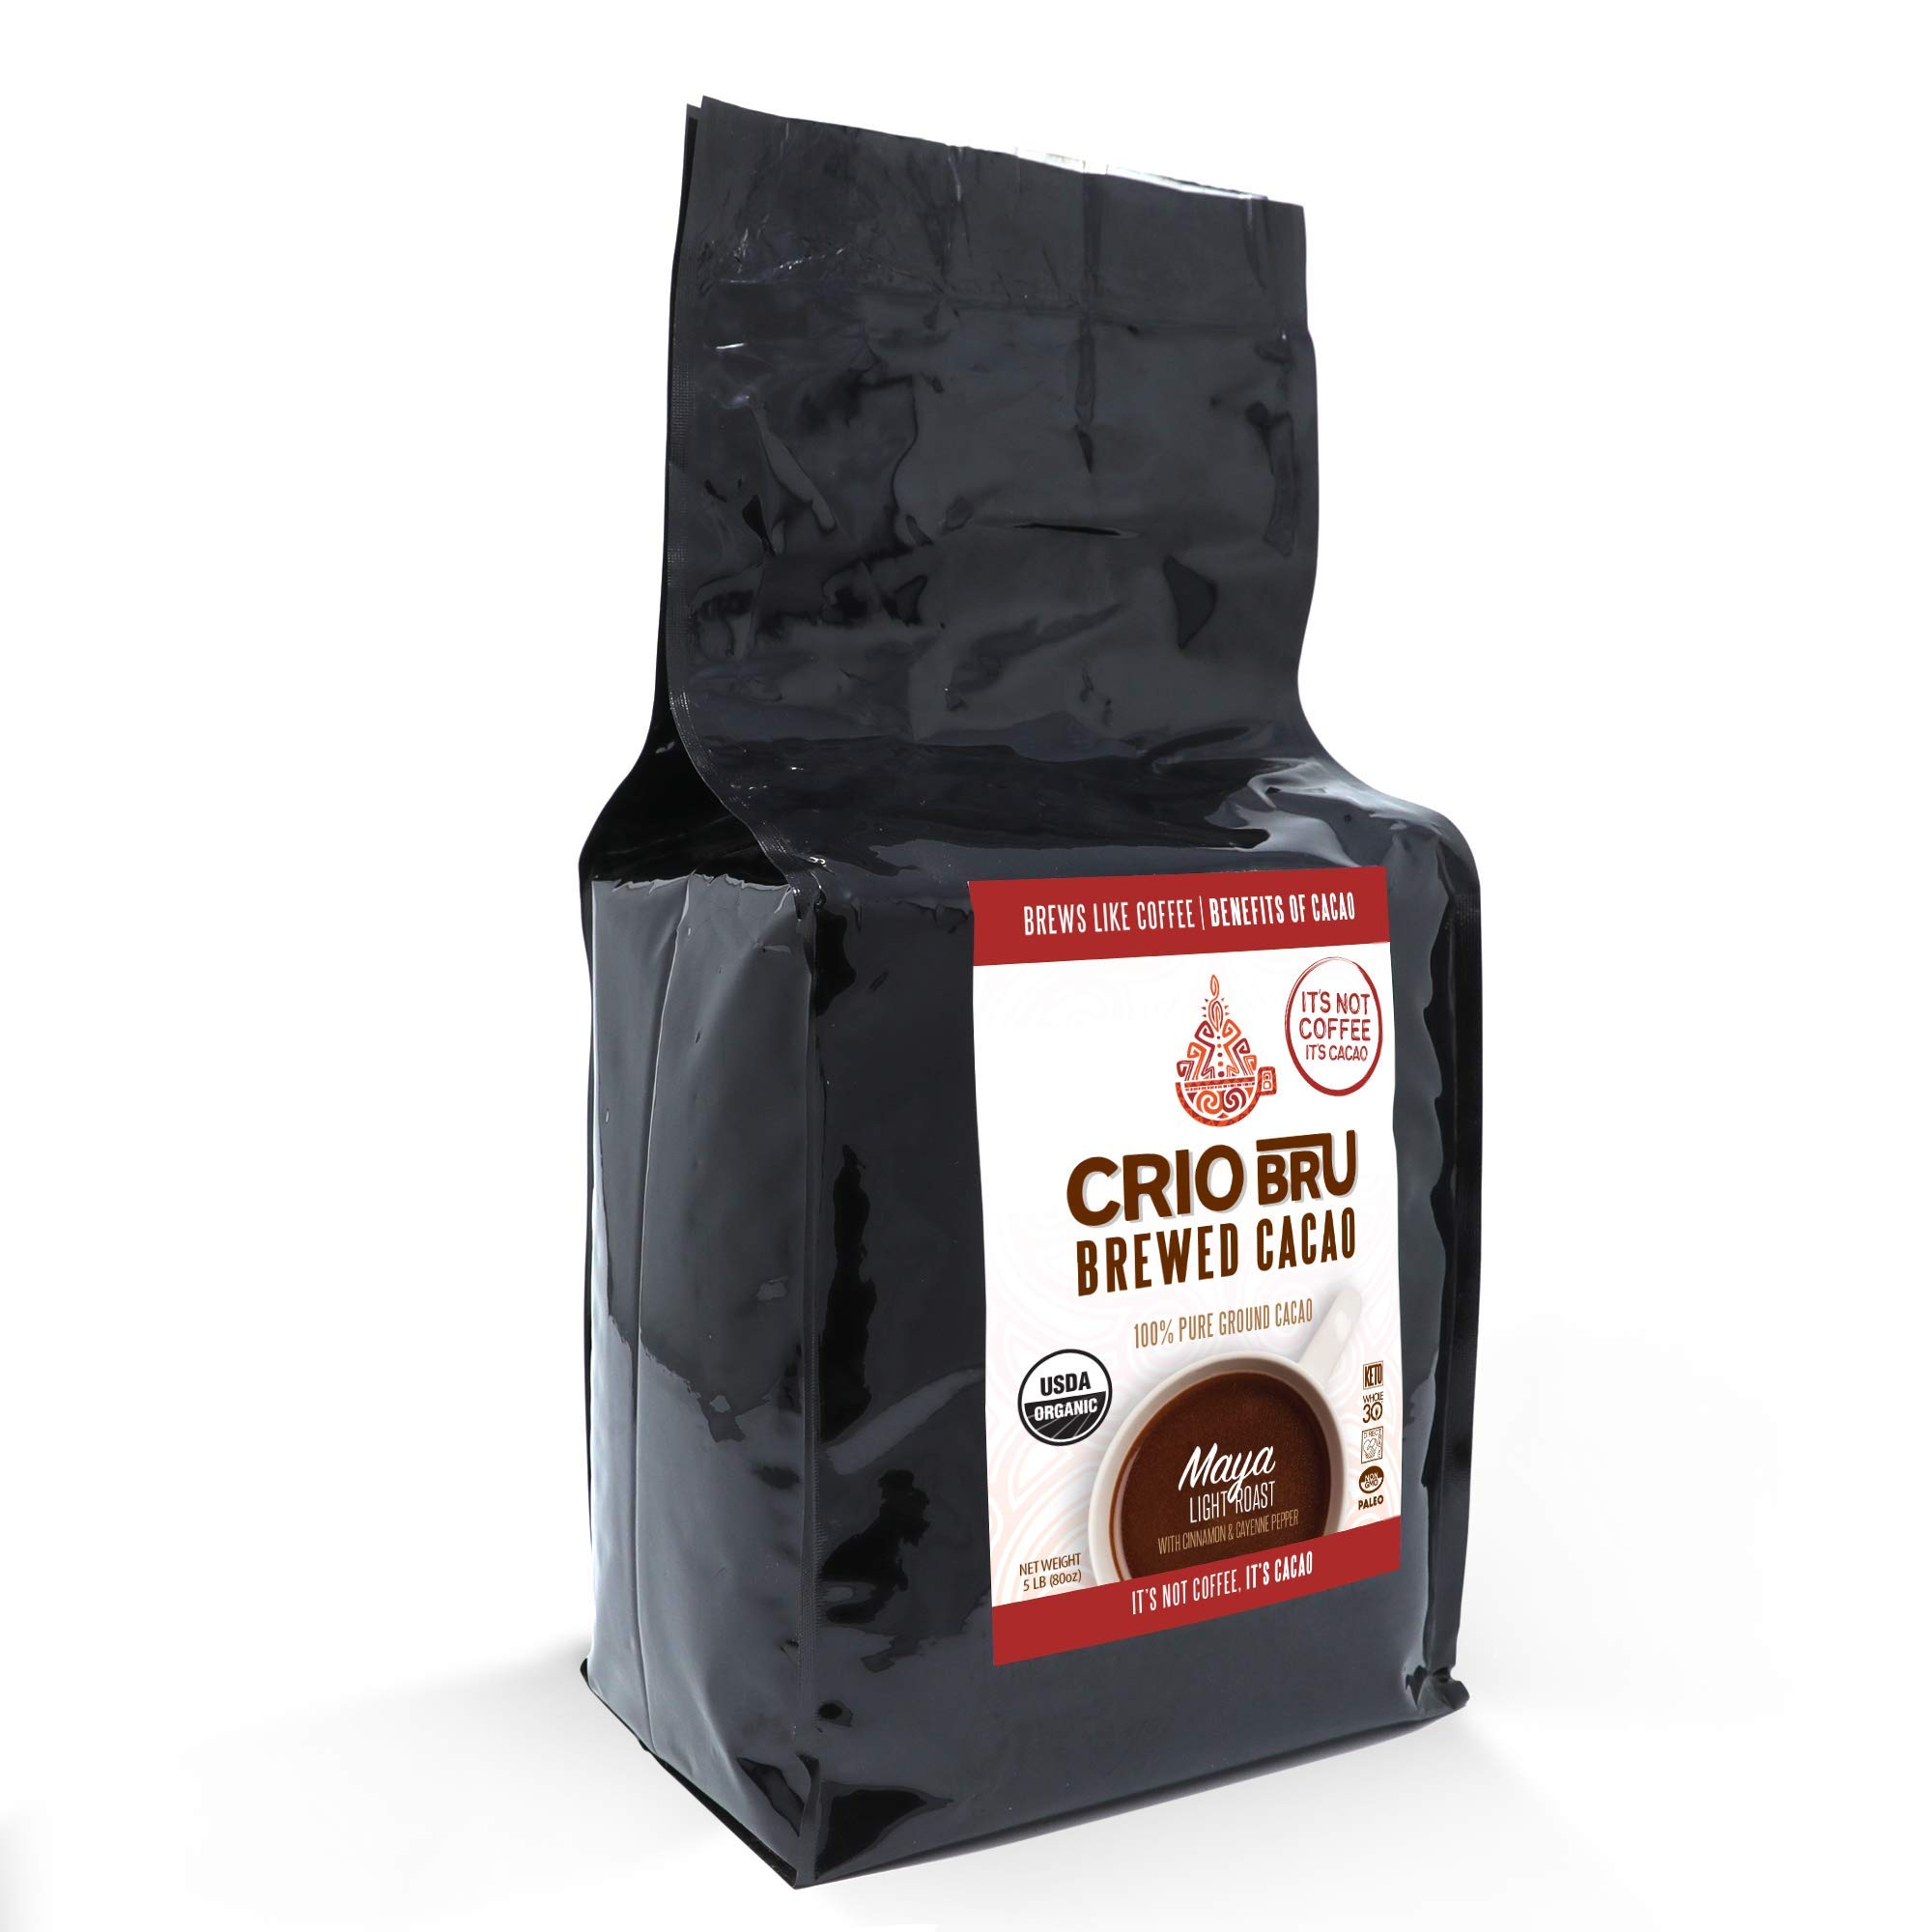 Crio Bru Maya Light Roast   Organic Healthy Brewed Cacao Drink   Great Substitute to Herbal Tea and Coffee   99% Caffeine Free Keto Whole-30 Low Calorie Honest Energy (80 oz (5 lb))